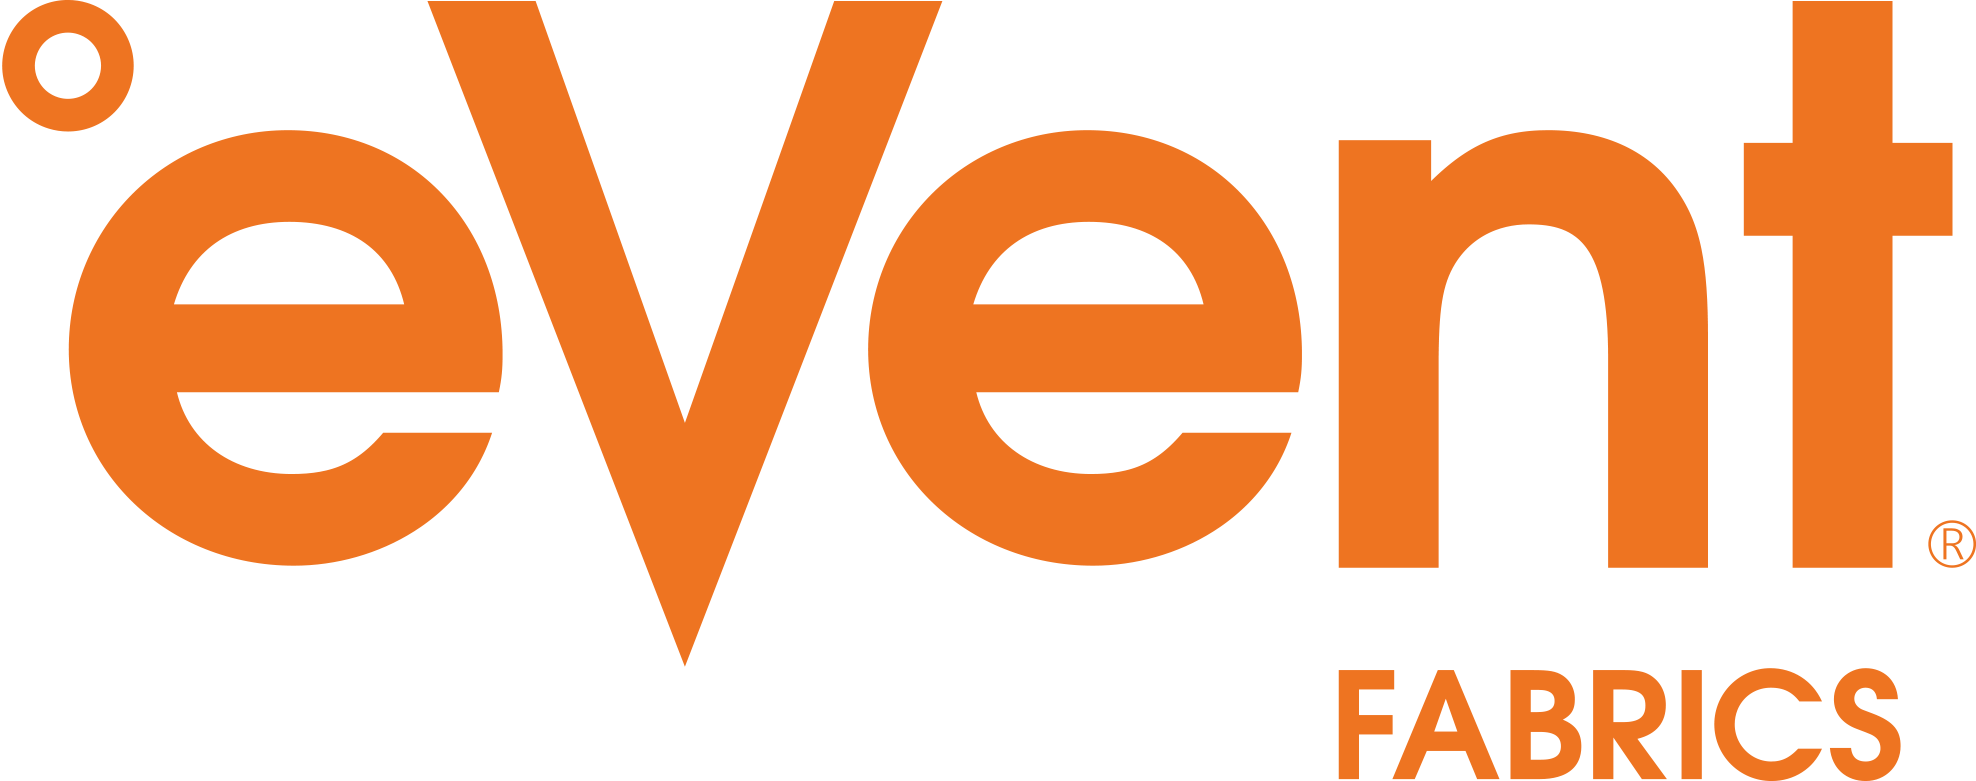 eVent-Logo.png